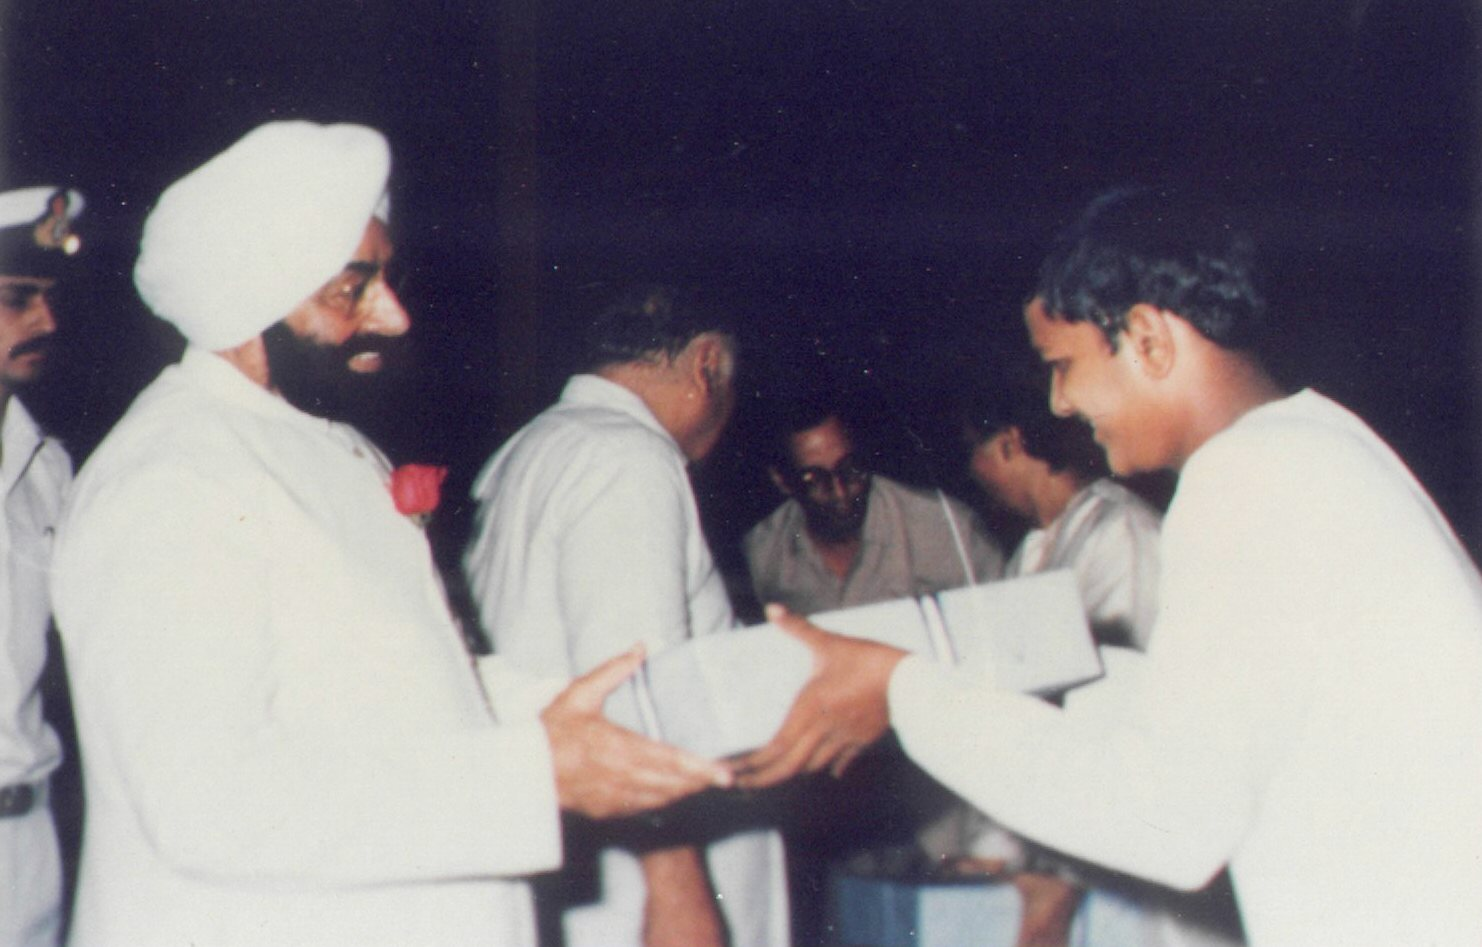 With then President of India Hon Shri Jhailsingh